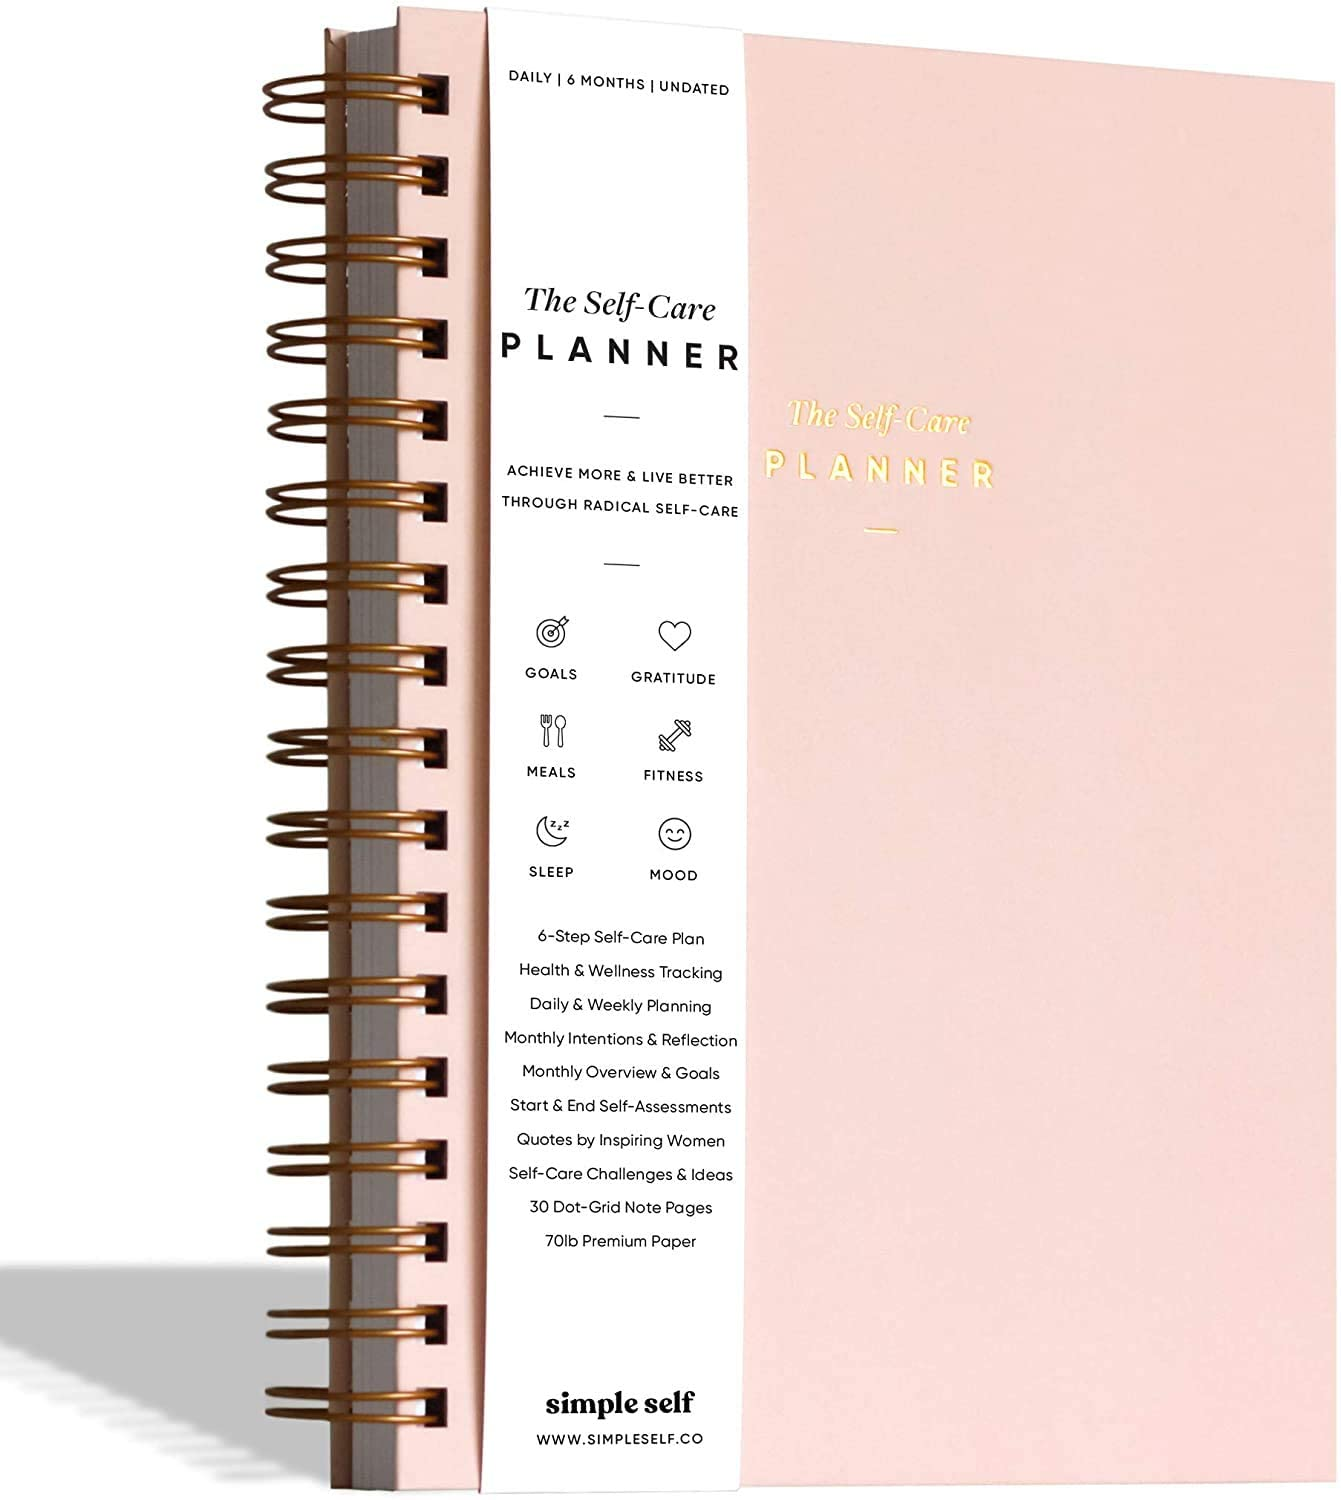 The Self-Care Planner by Simple Self - Best Daily Life Planner for Wellness, Achieving Goals, Health, Happiness - Productivity, Gratitude, Meals, Fitness - Undated Spiral 6-Month (Blush, Daily)